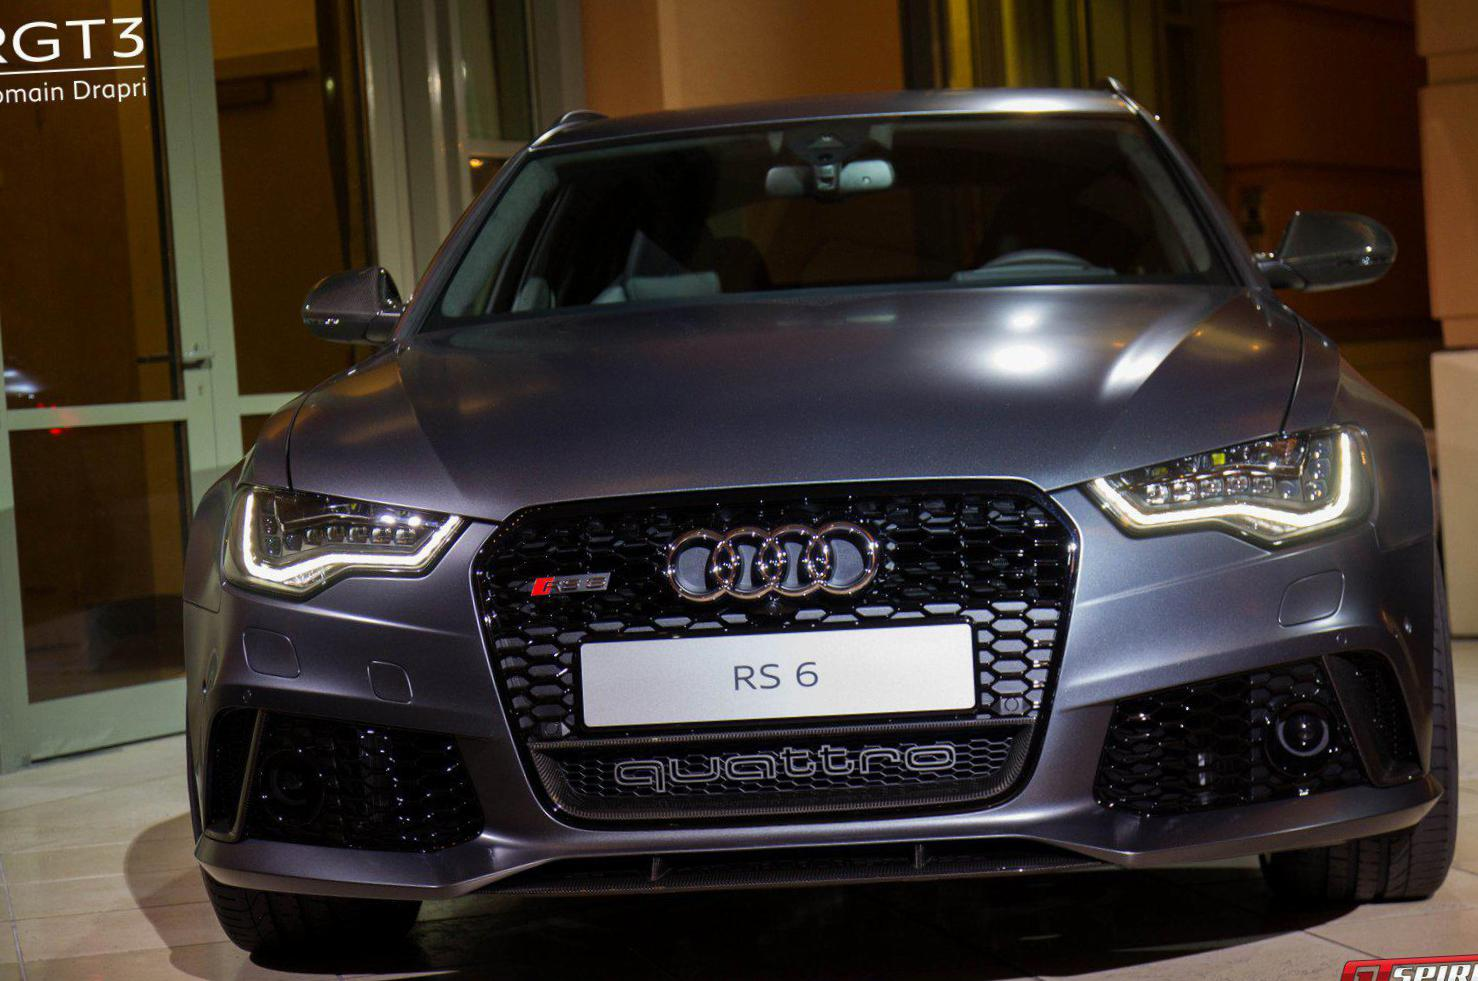 RS6 Avant Audi Specifications hatchback